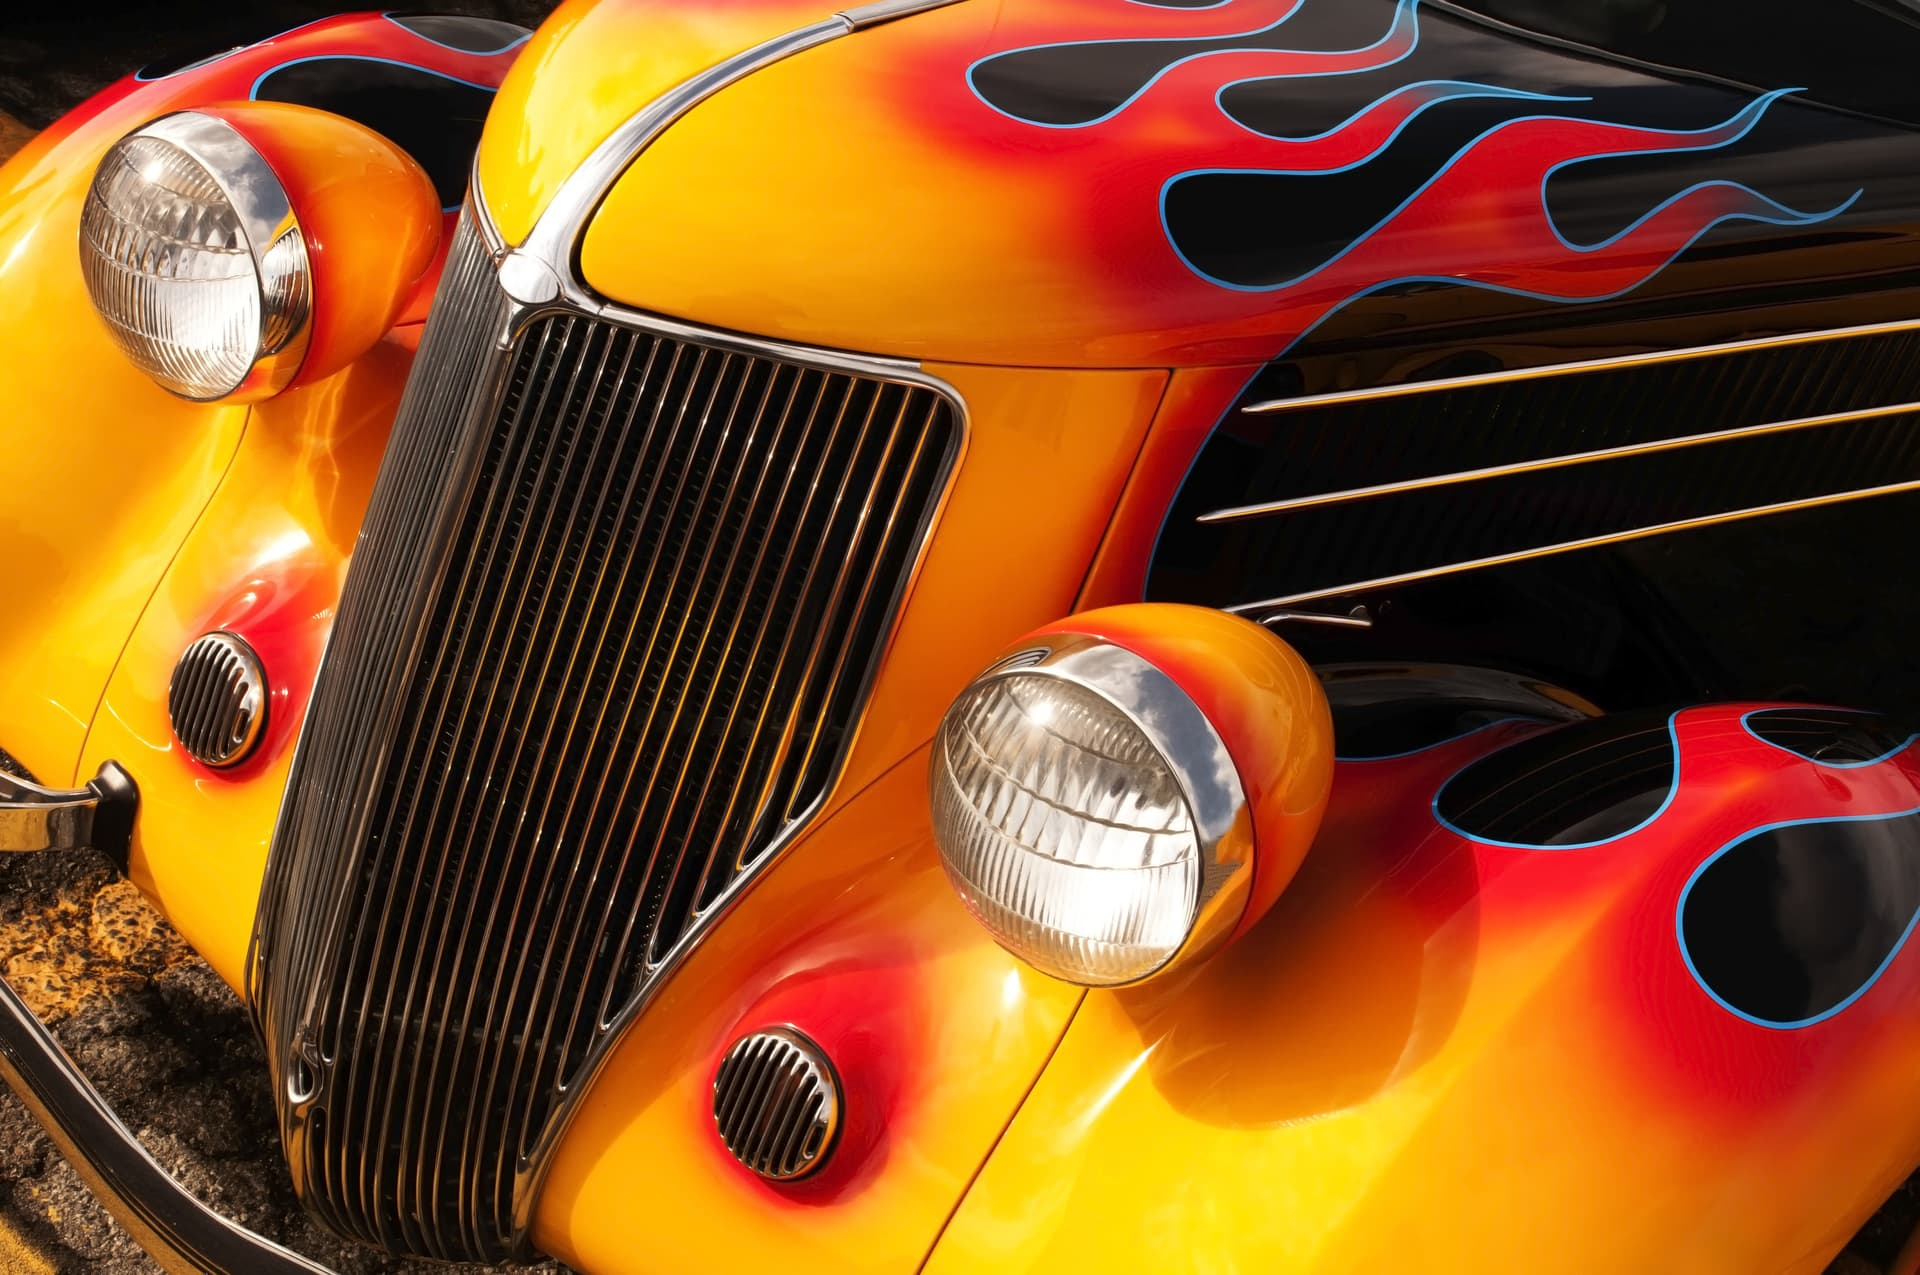 Hot Rod Flames Graphic Air